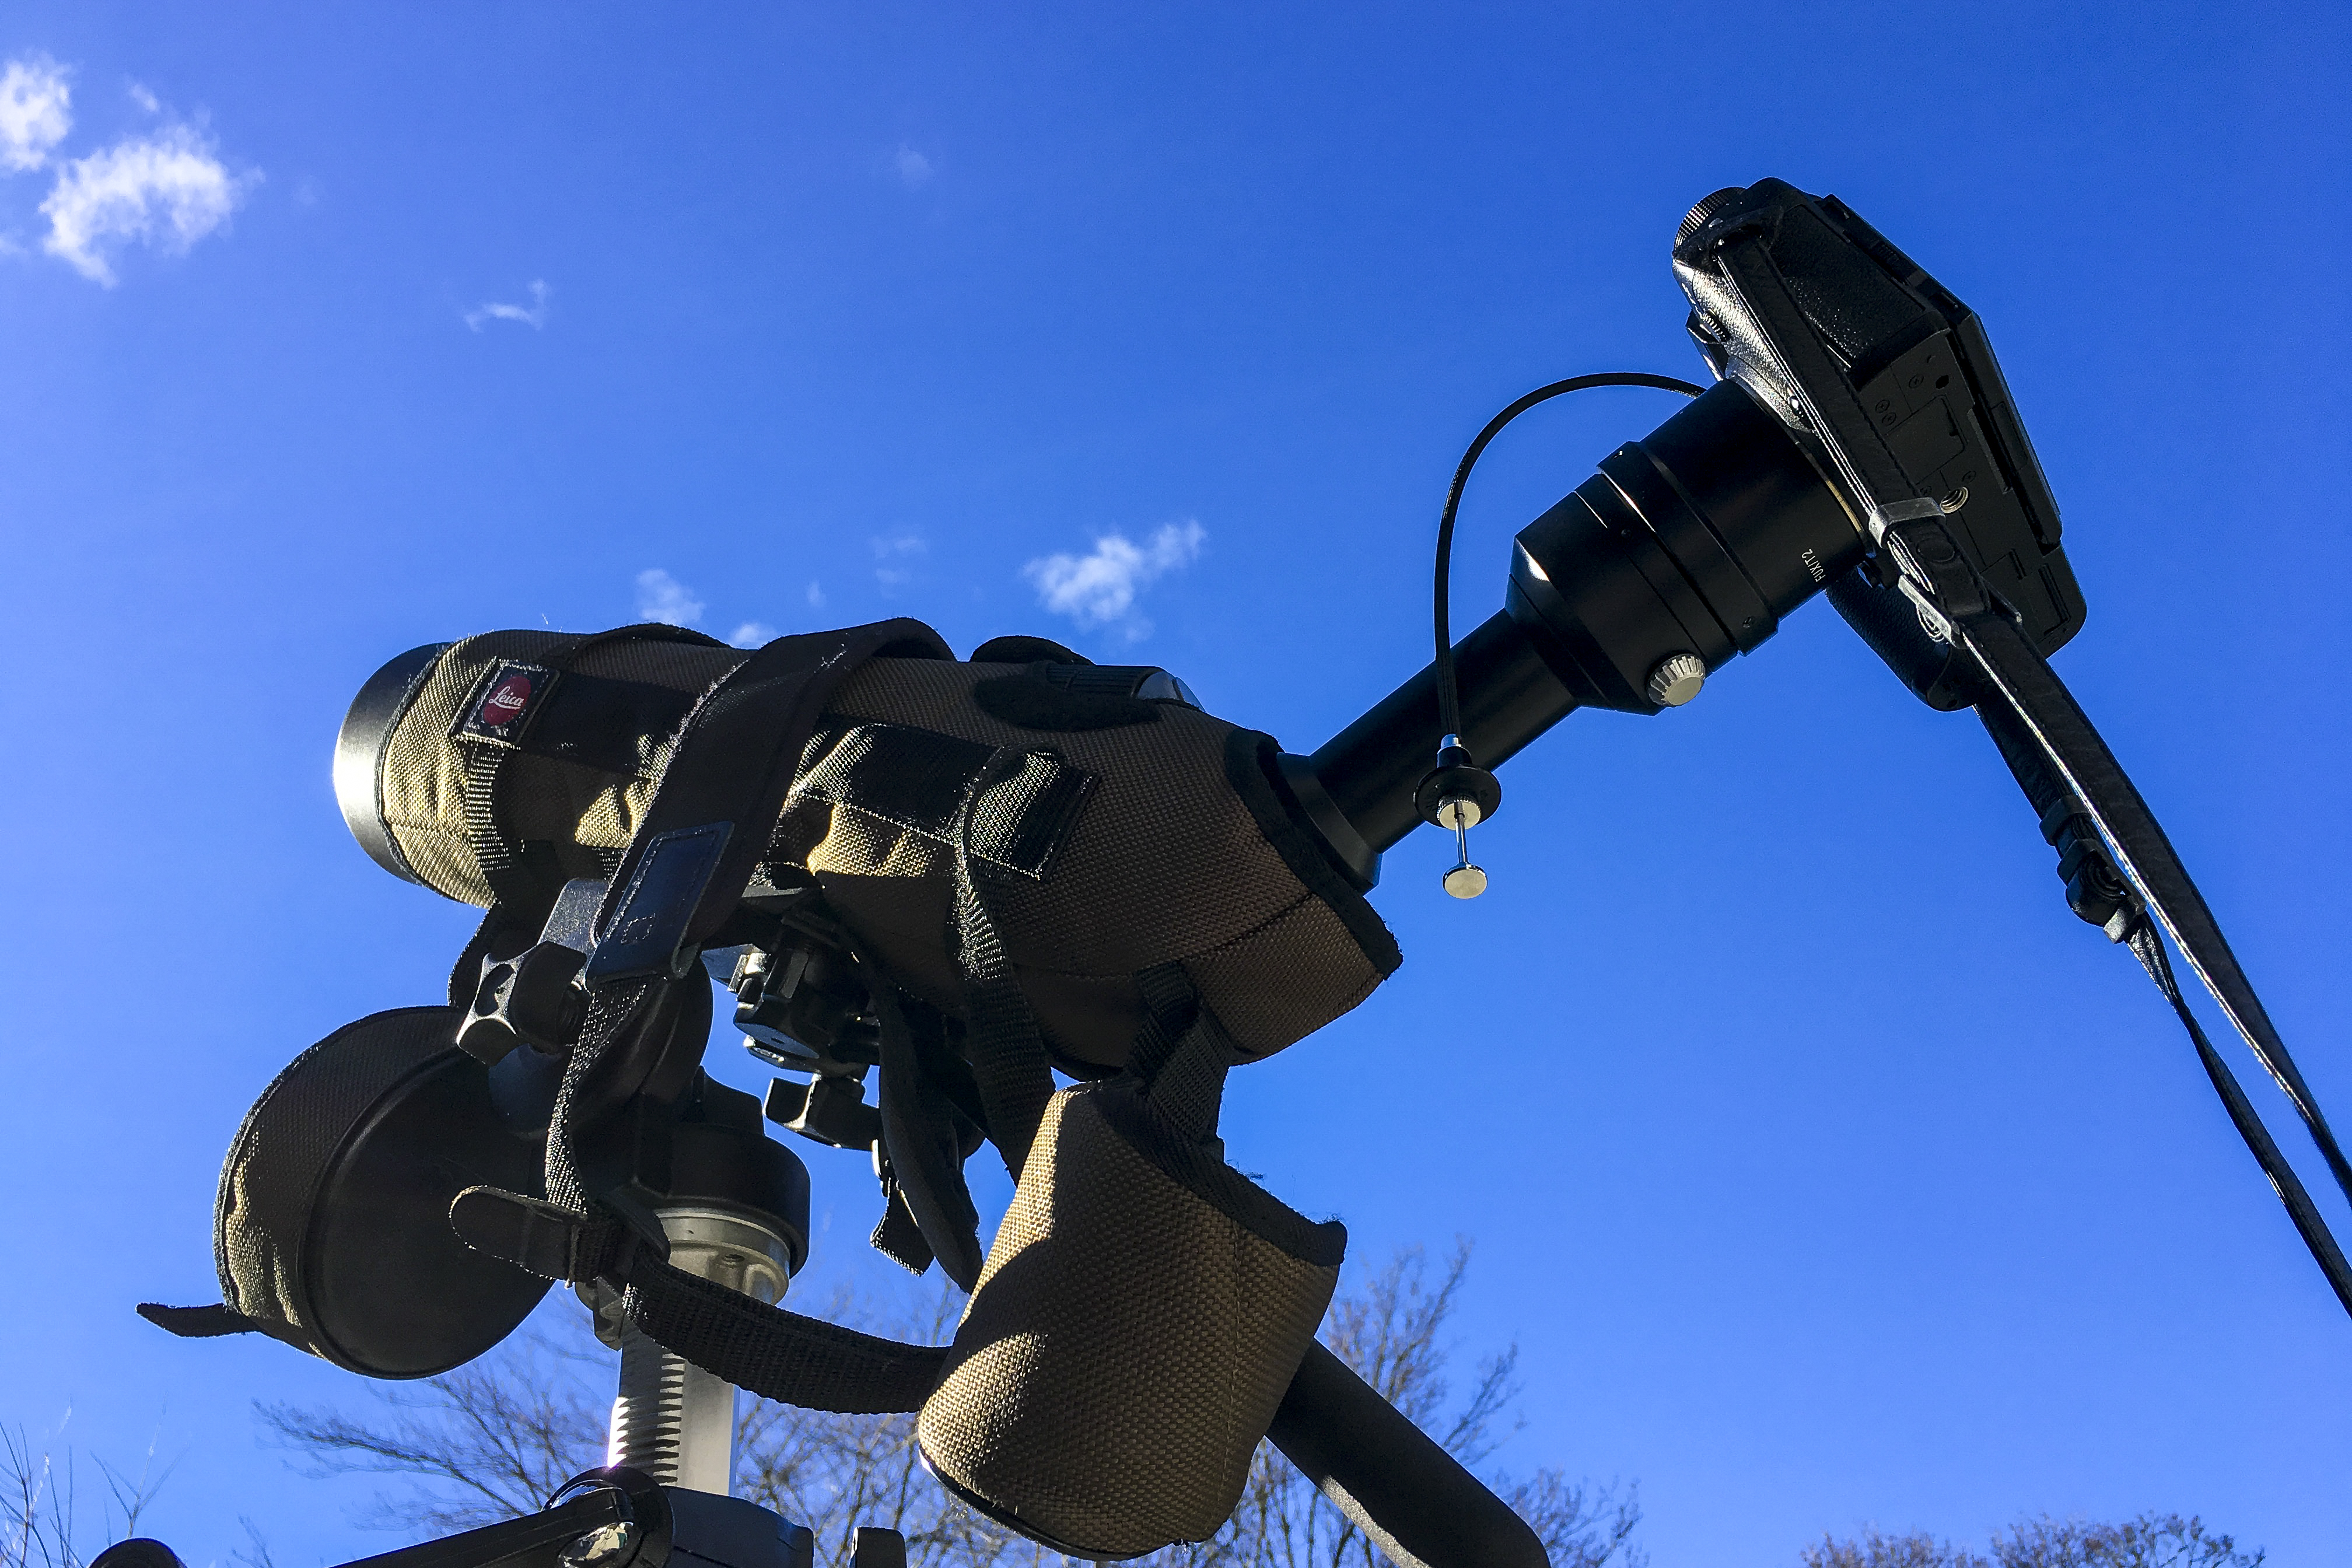 Digiscoping the sun with a Leica APO Televid 77 spotting scope, eyepiece adapter, and Fujifilm X-T2 camera